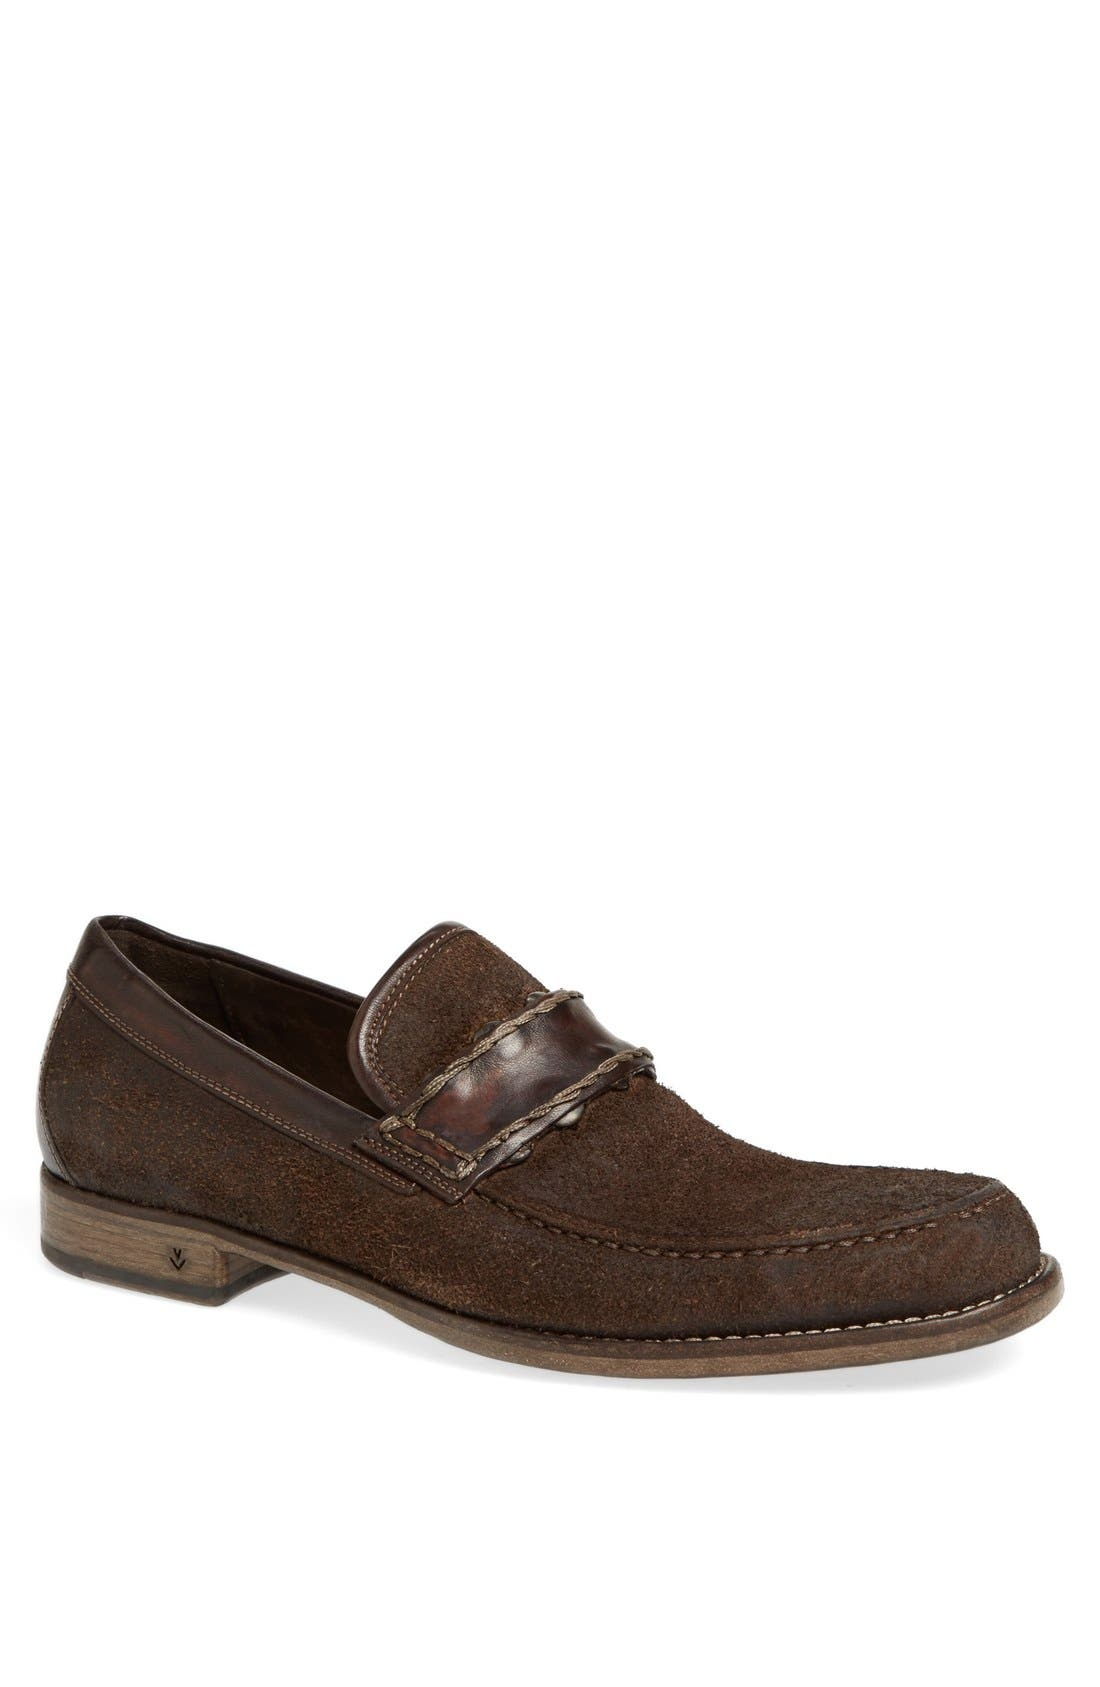 Main Image - John Varvatos Collection 'Ludwig Signature' Penny Loafer